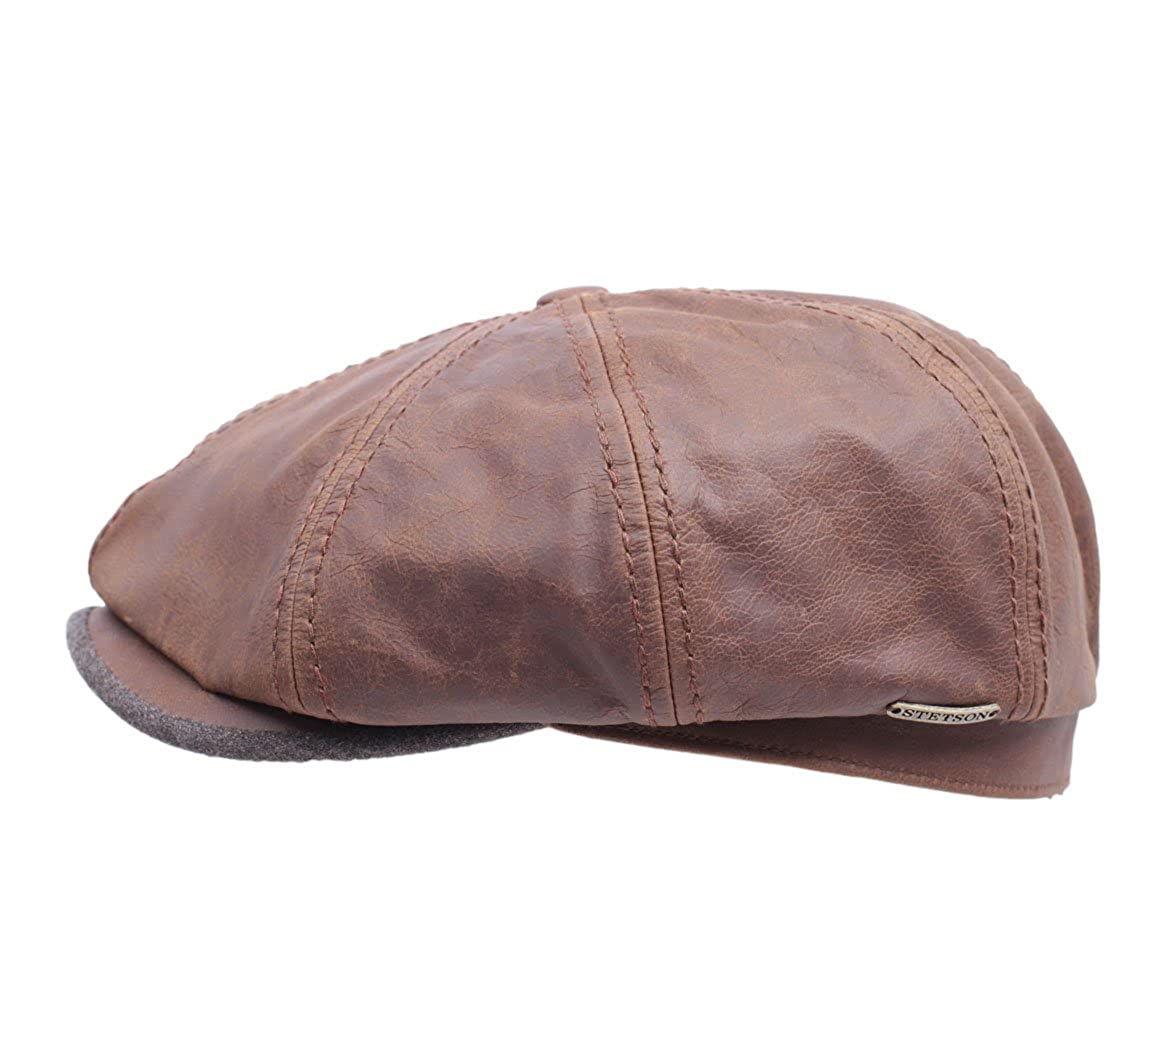 46350e476c2 Stetson Hatteras Goatskin Leather Flat Cap Size L Brown  Amazon.ca   Clothing   Accessories